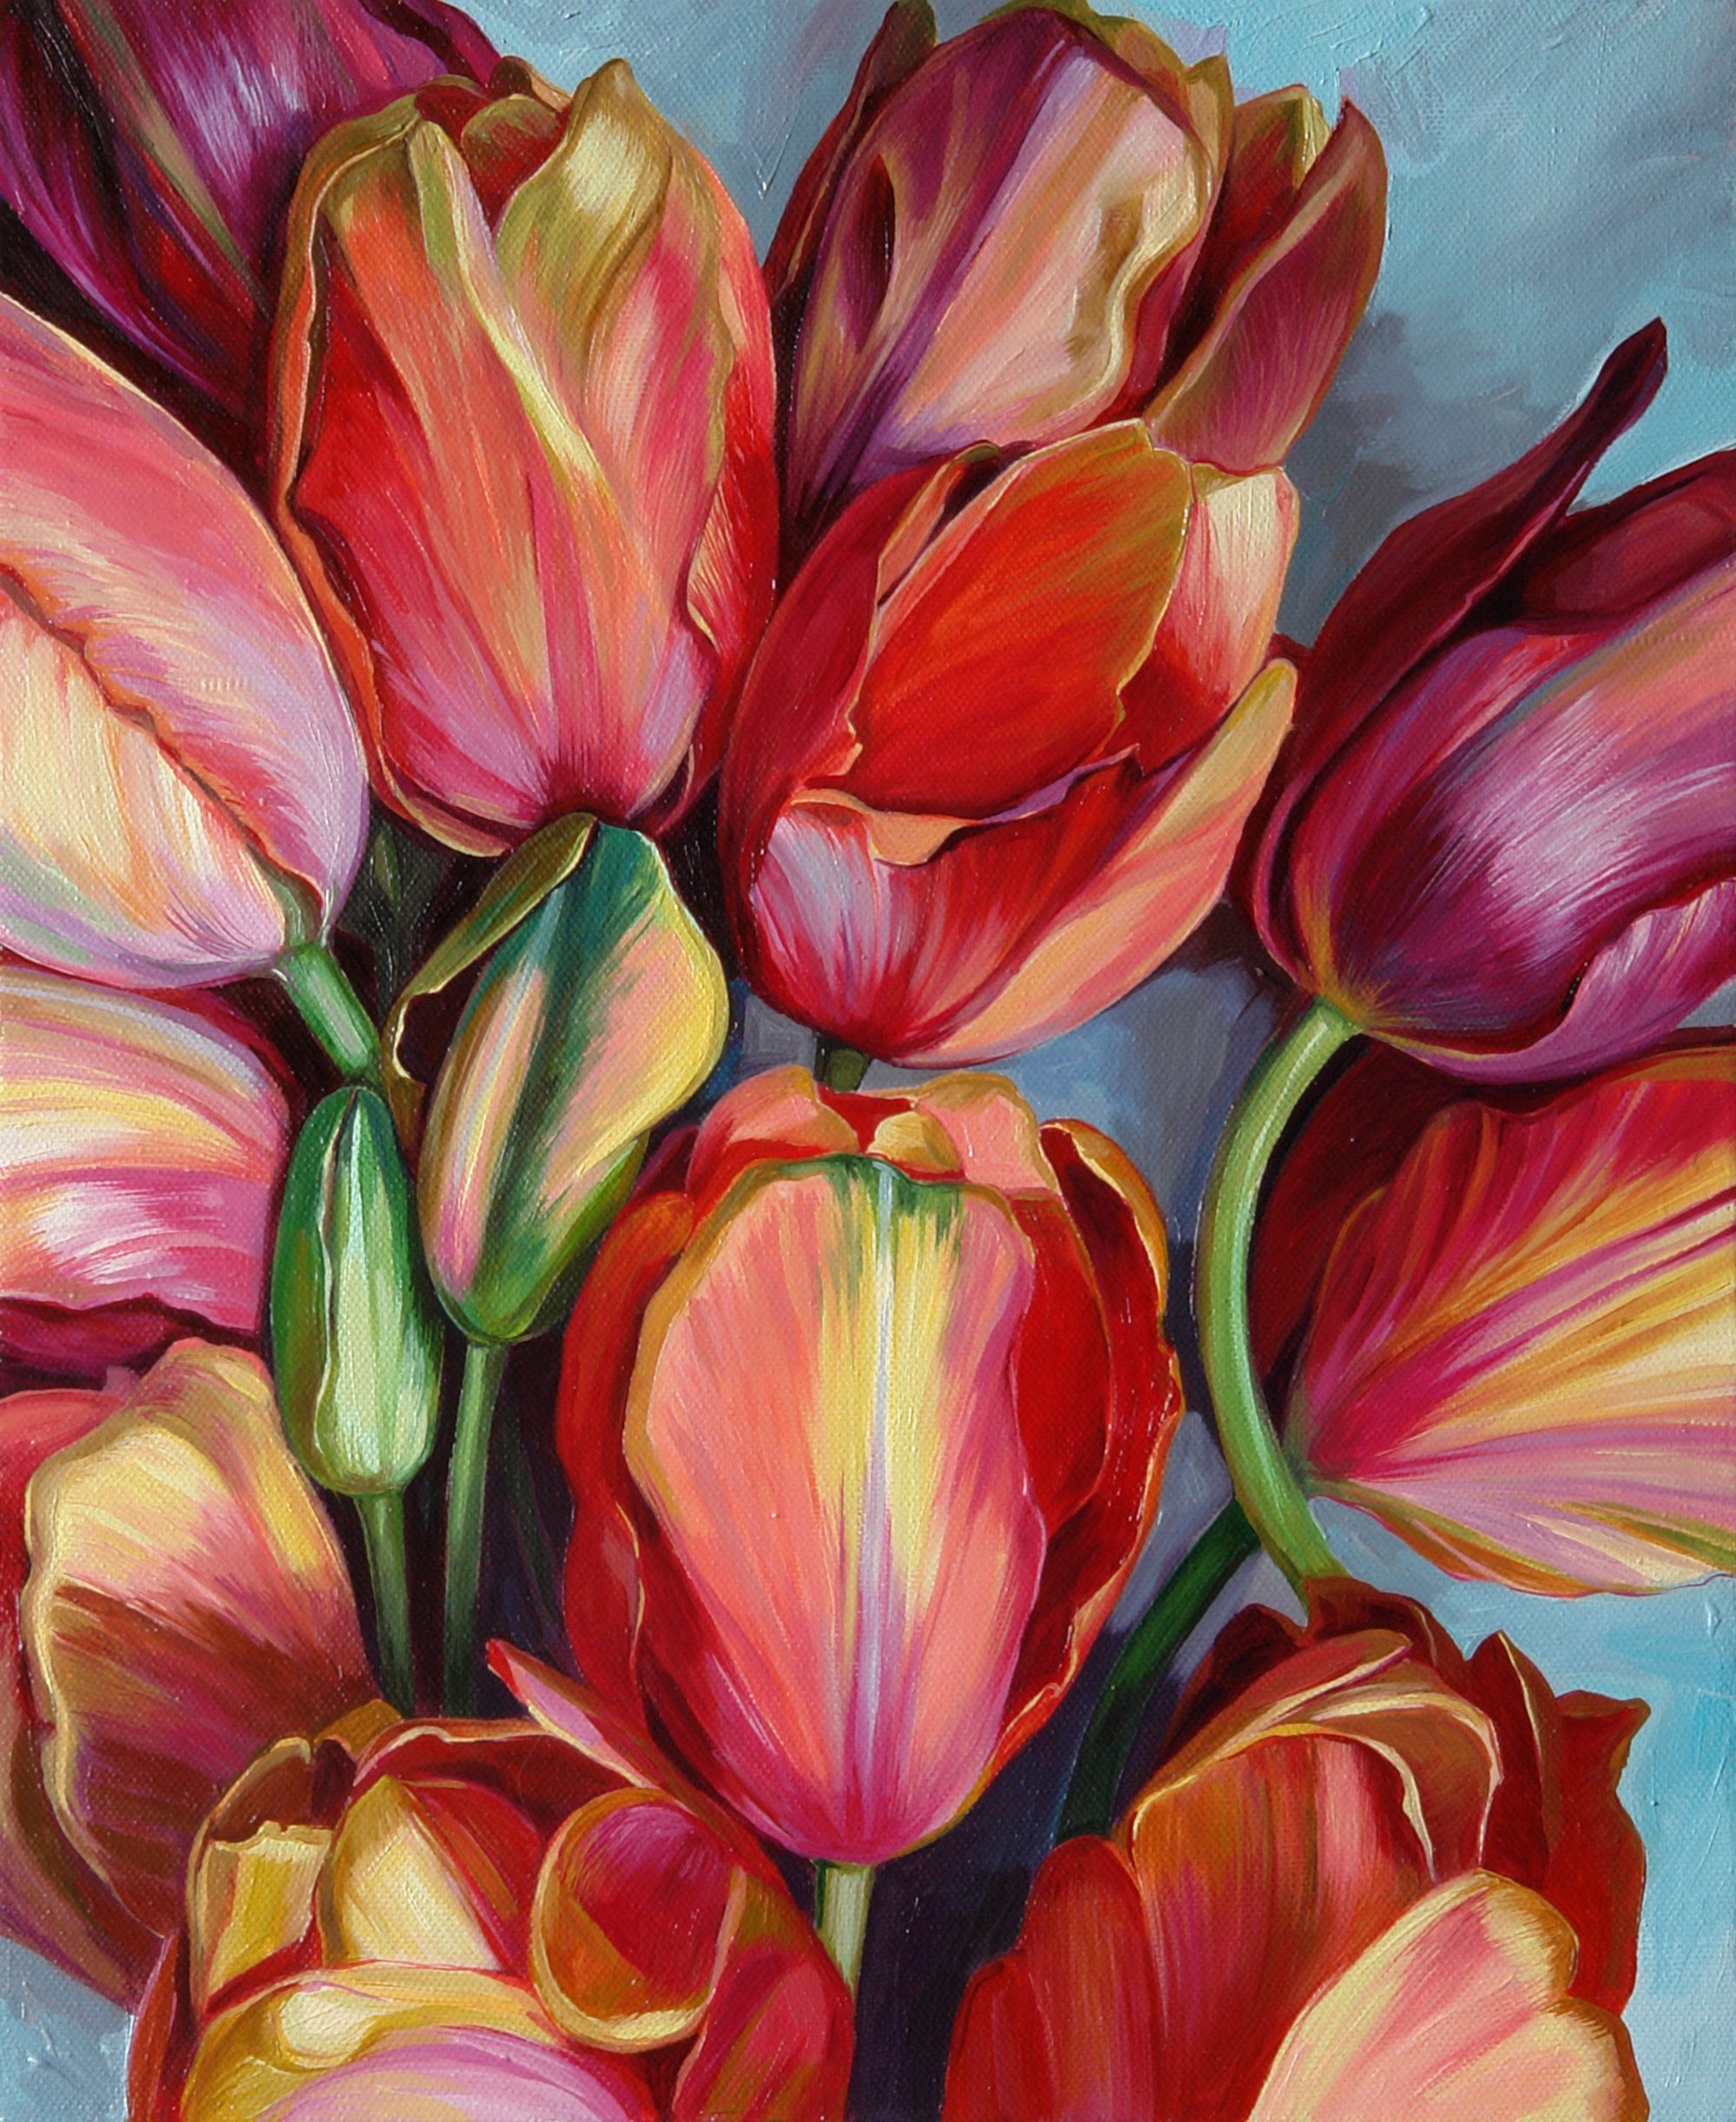 Red tulips, Original oil painting, Gift idea for woman